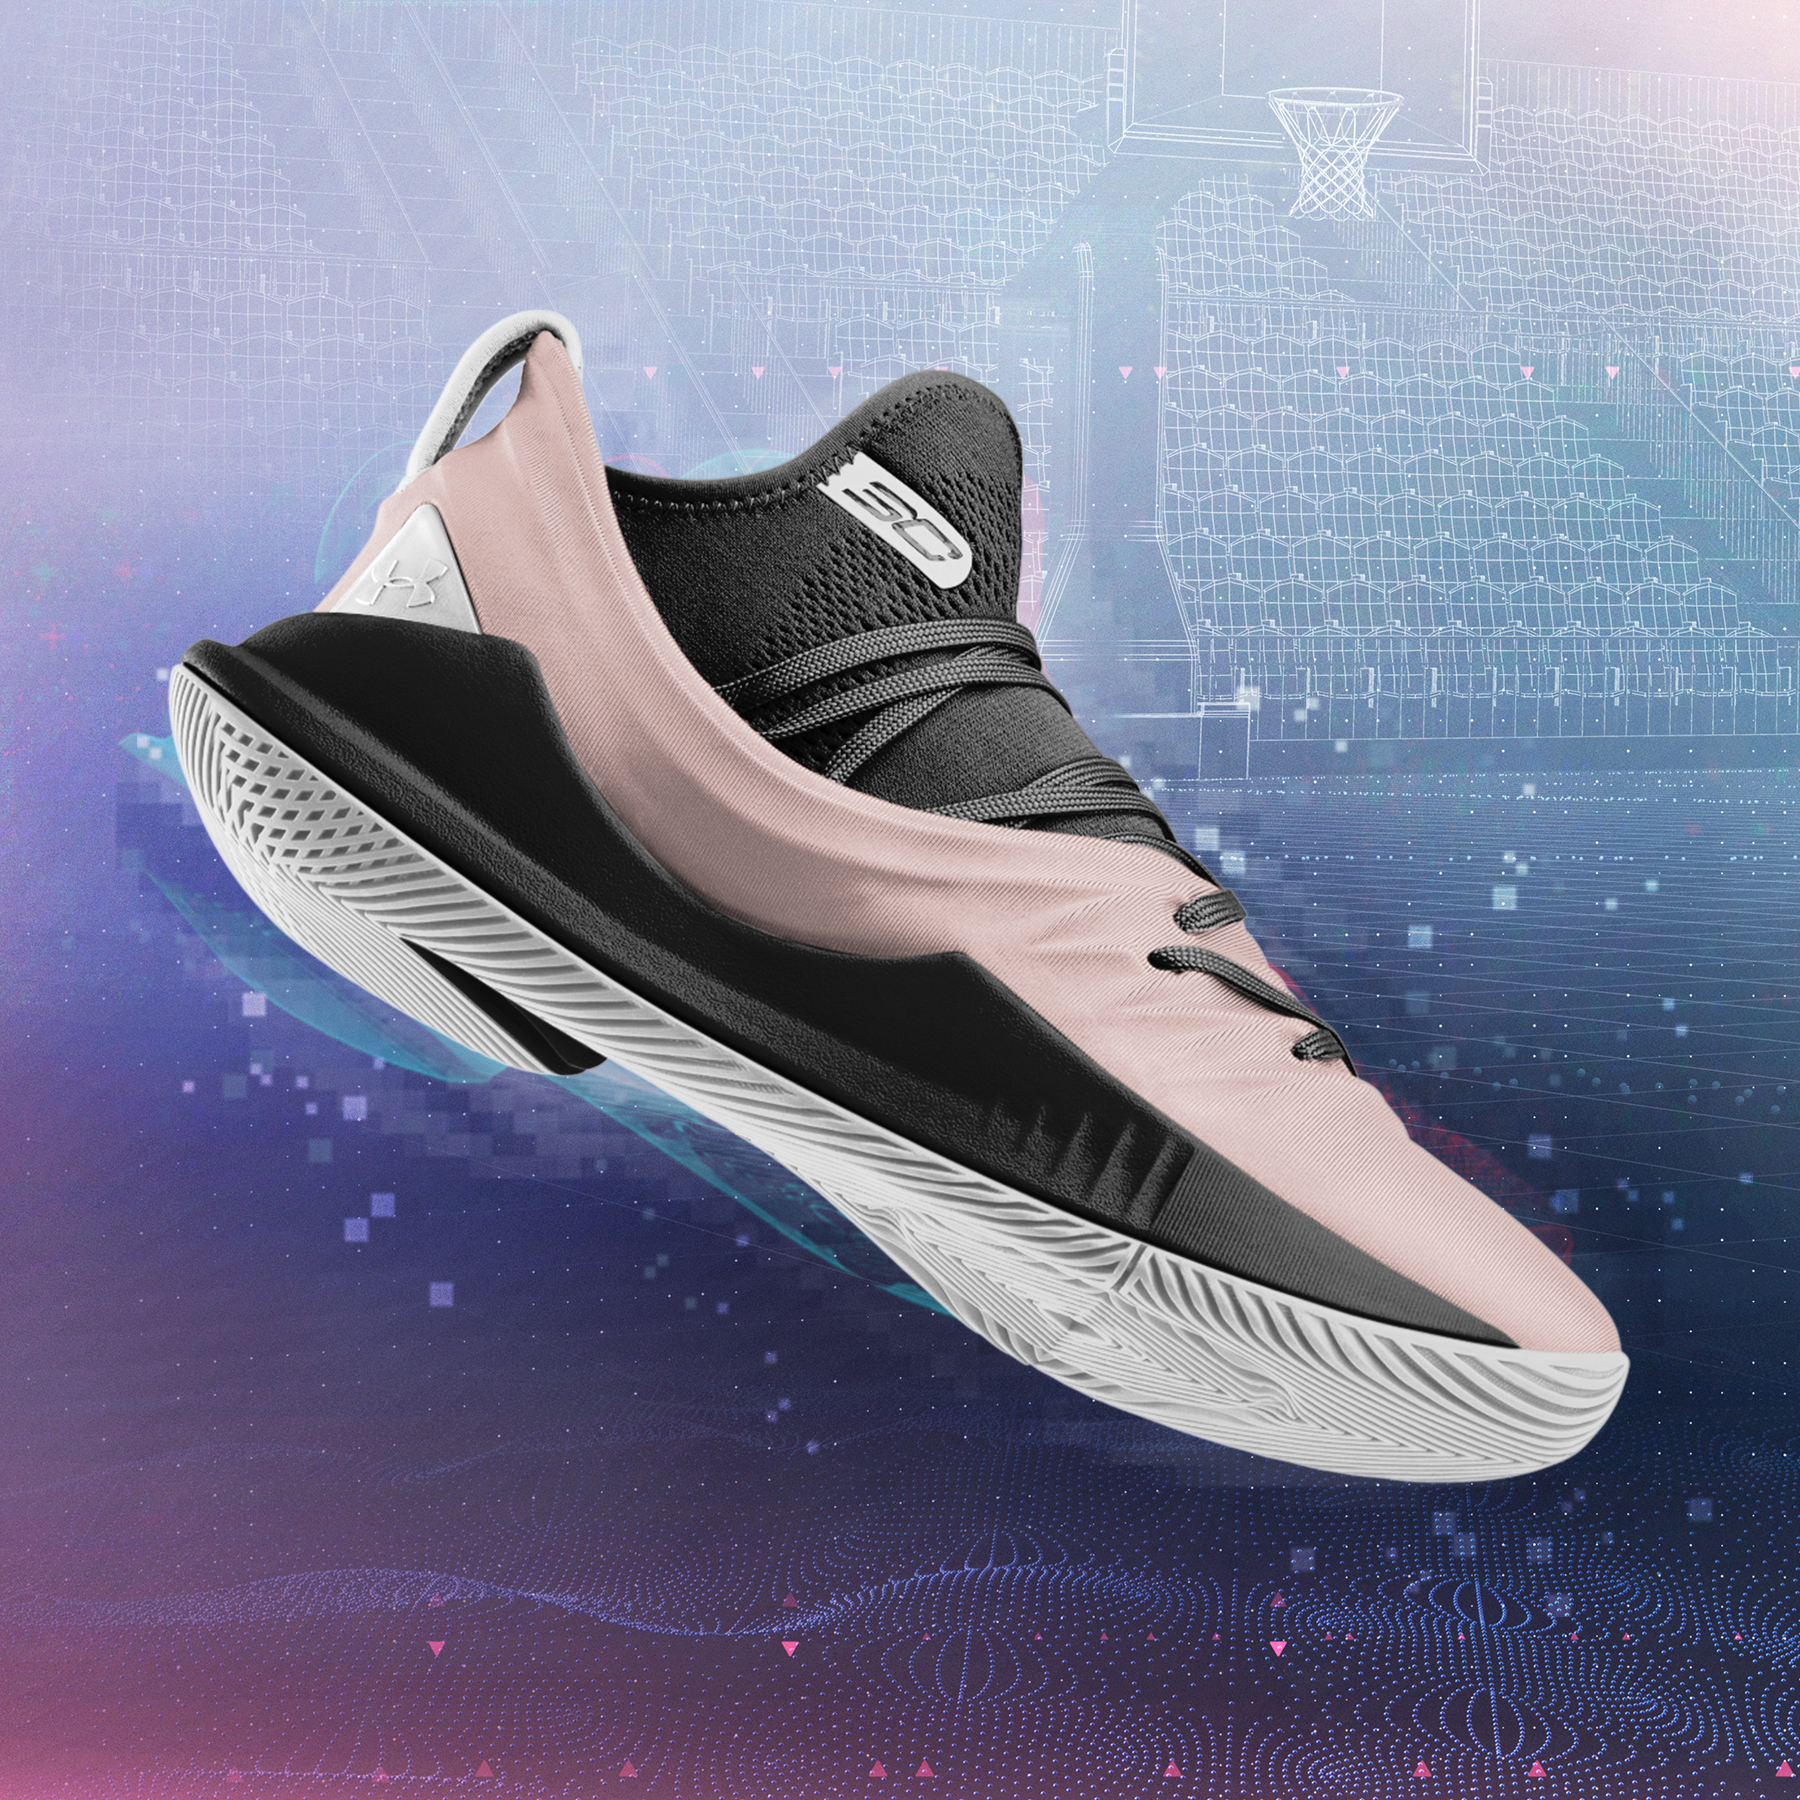 separation shoes 1259f 56c1f CURRY 5 MOVES TO ICON | UA Newsroom